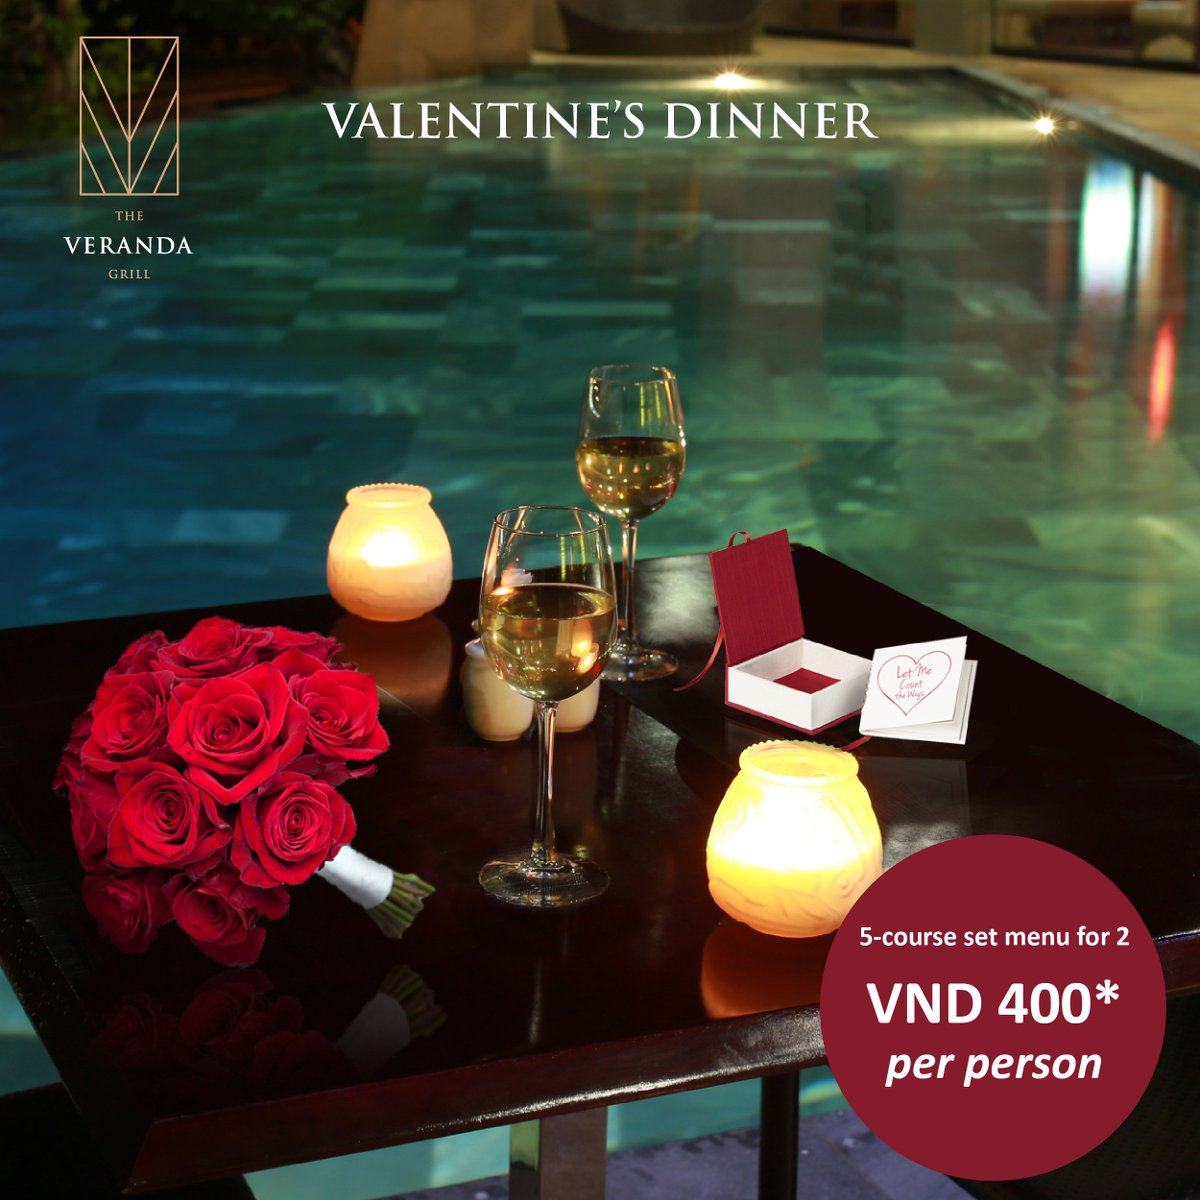 #VALENTINE FEAST at The Veranda Grill Elevate your day of romance with a stylish five-course dinner at our steak house - The Veranda Grill. Loose yourself in this Valentine's Day celebration and create memories with your loved one. Book now and secure the perfect evening for two. https://t.co/gg0ENfaQSo